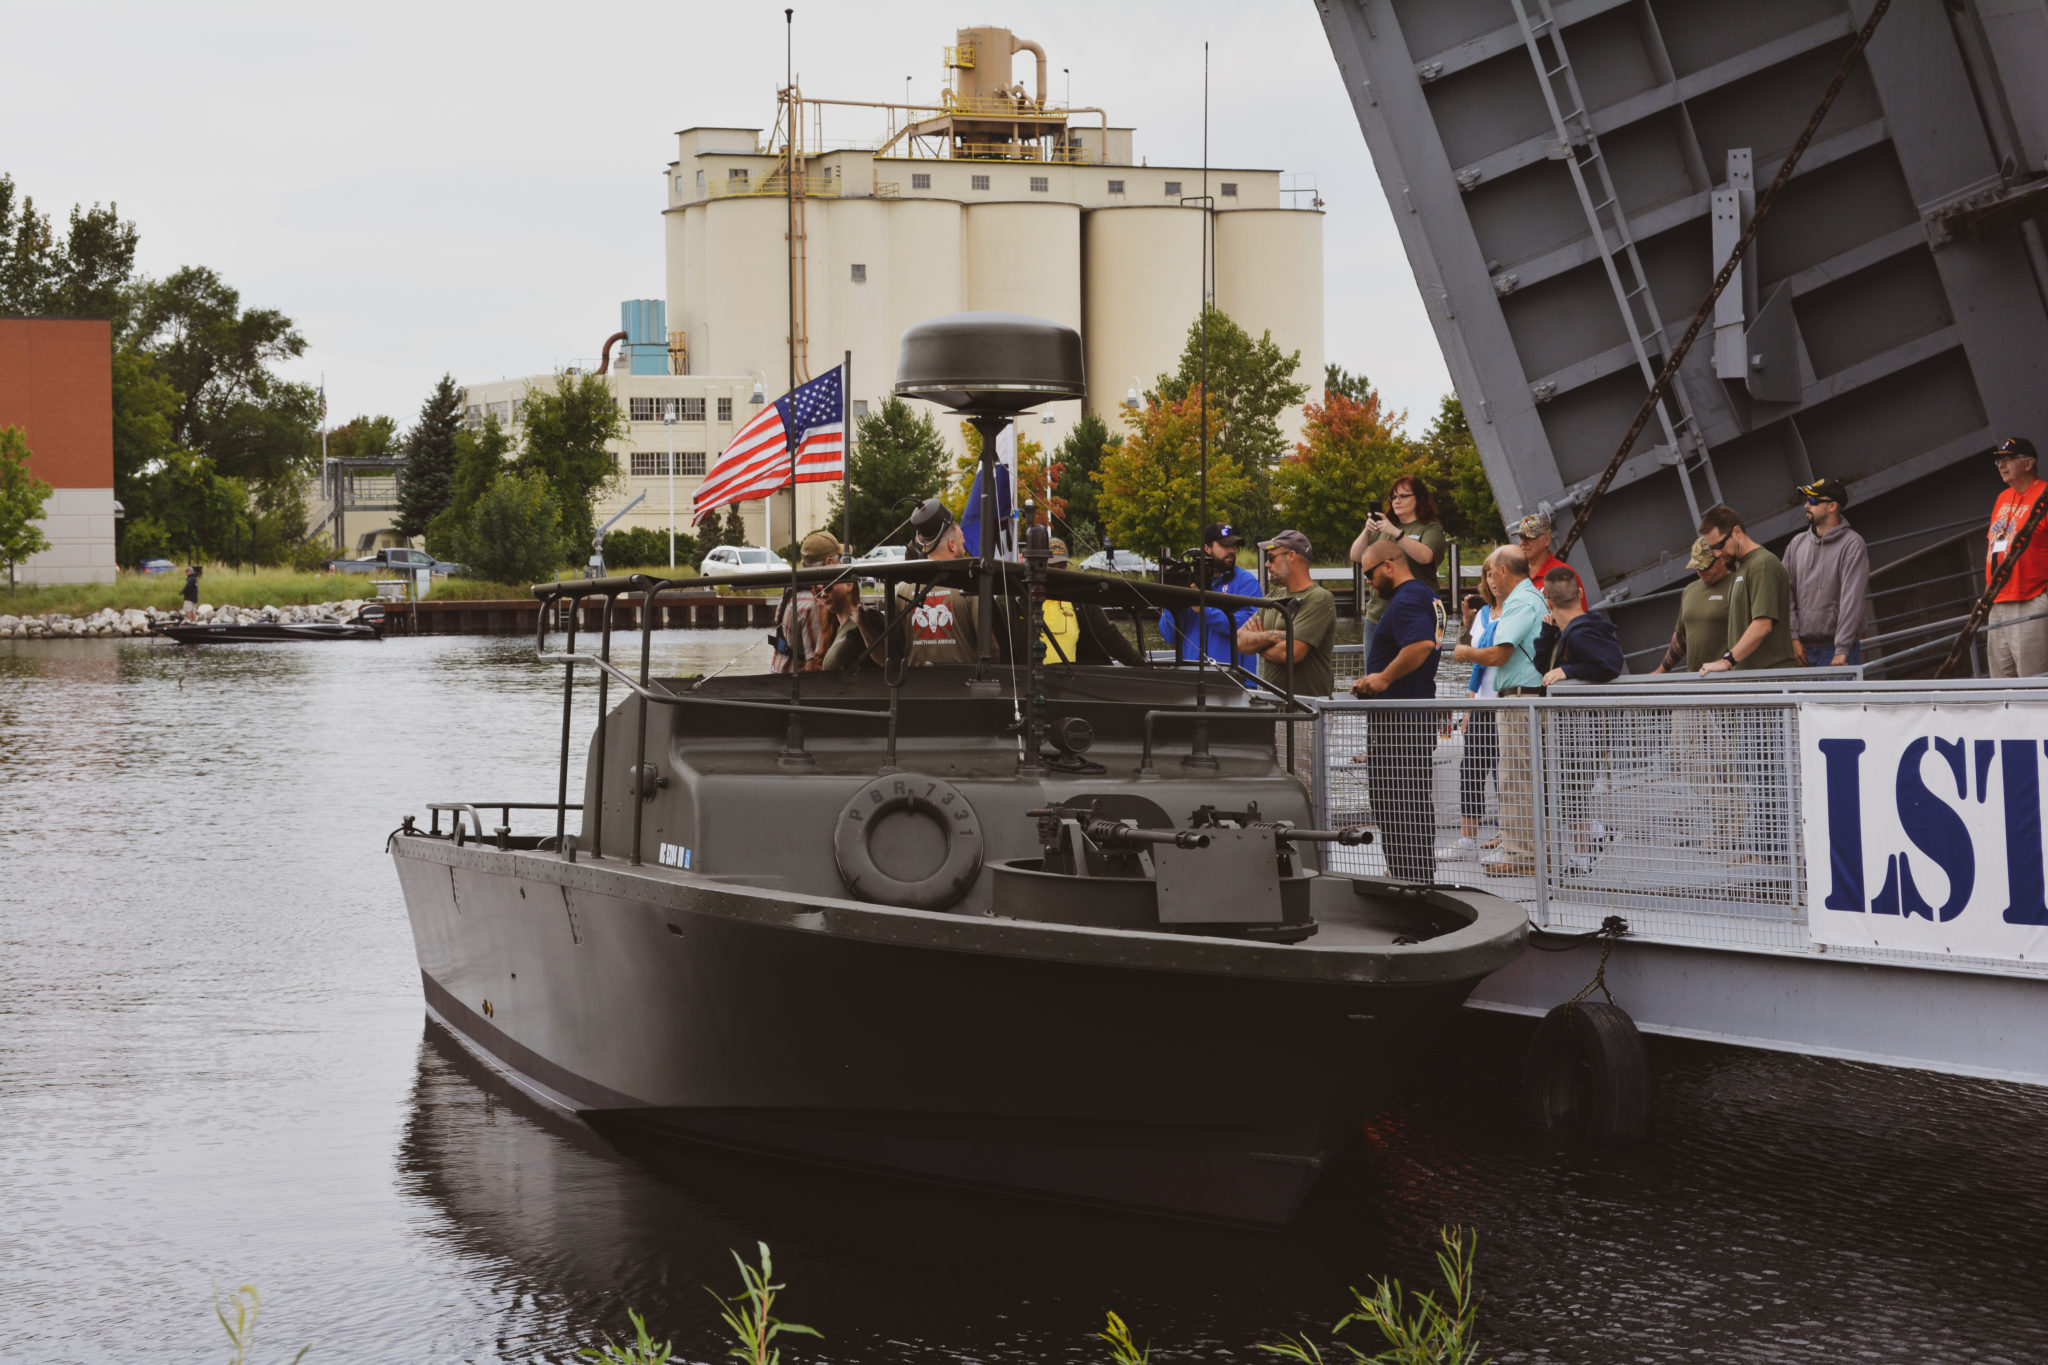 Vietnam-Era River Patrol Boat Roars Back to Life on Lake Michigan